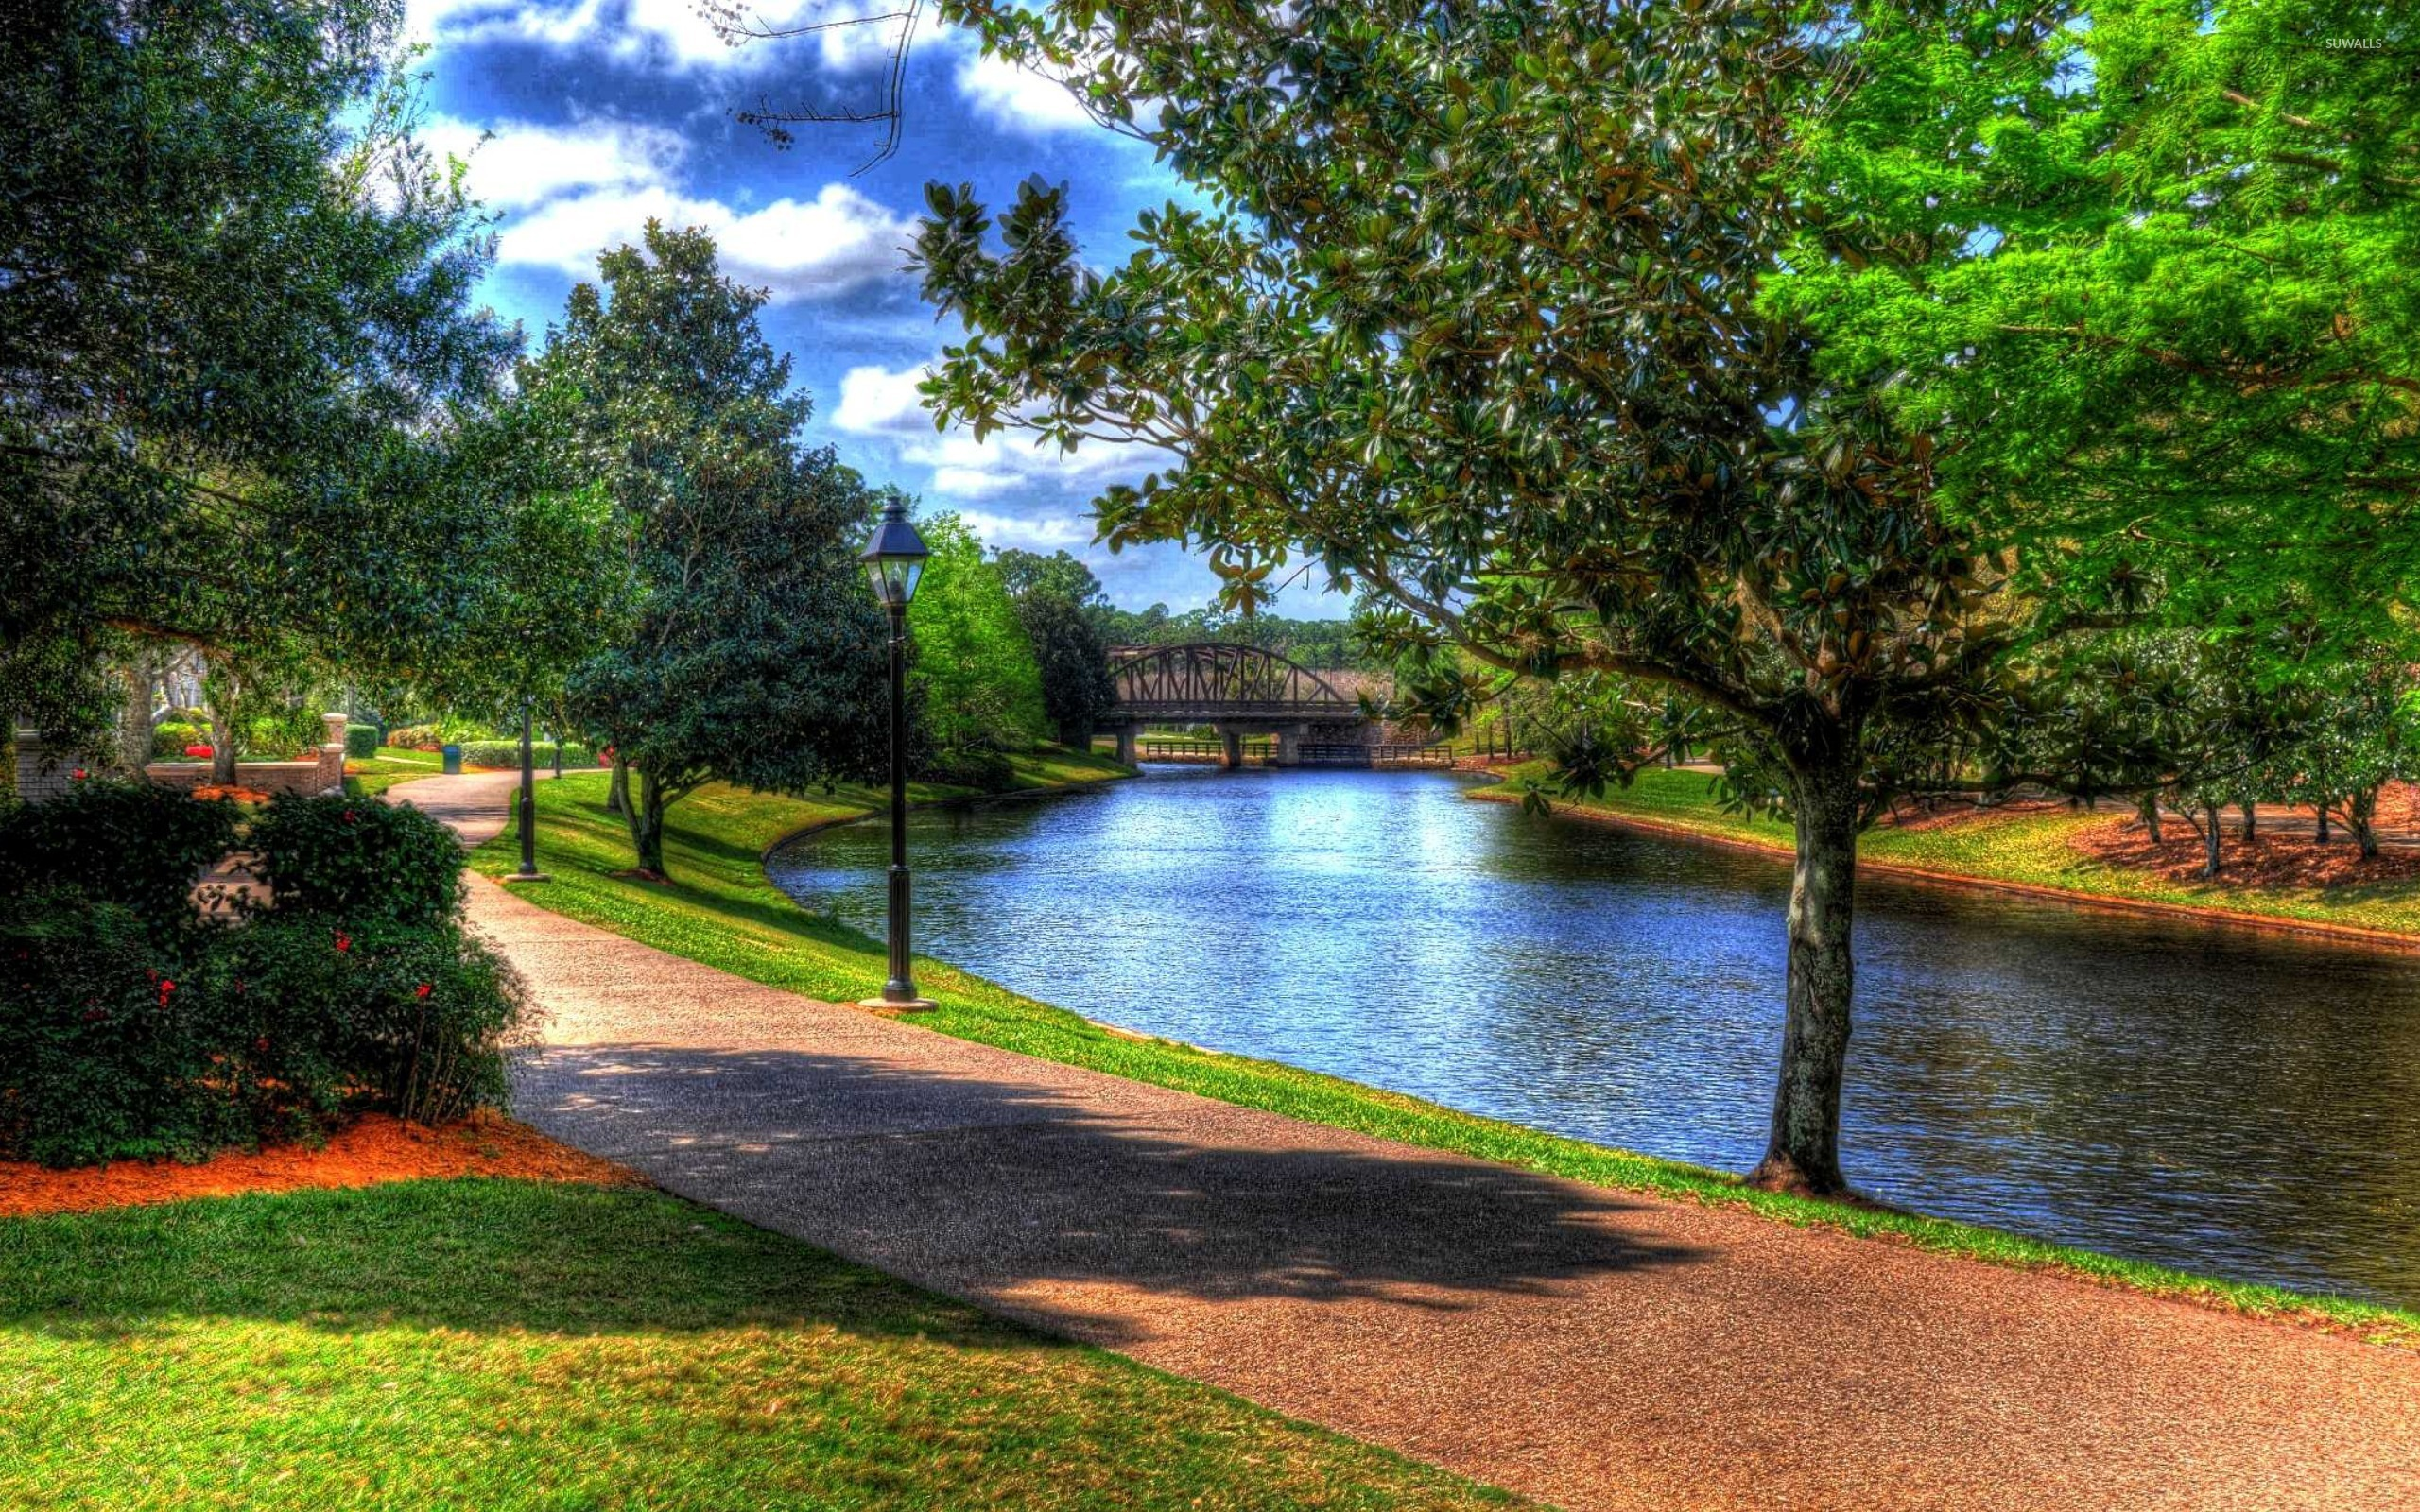 Beautiful park by the river wallpaper - Nature wallpapers - #44490